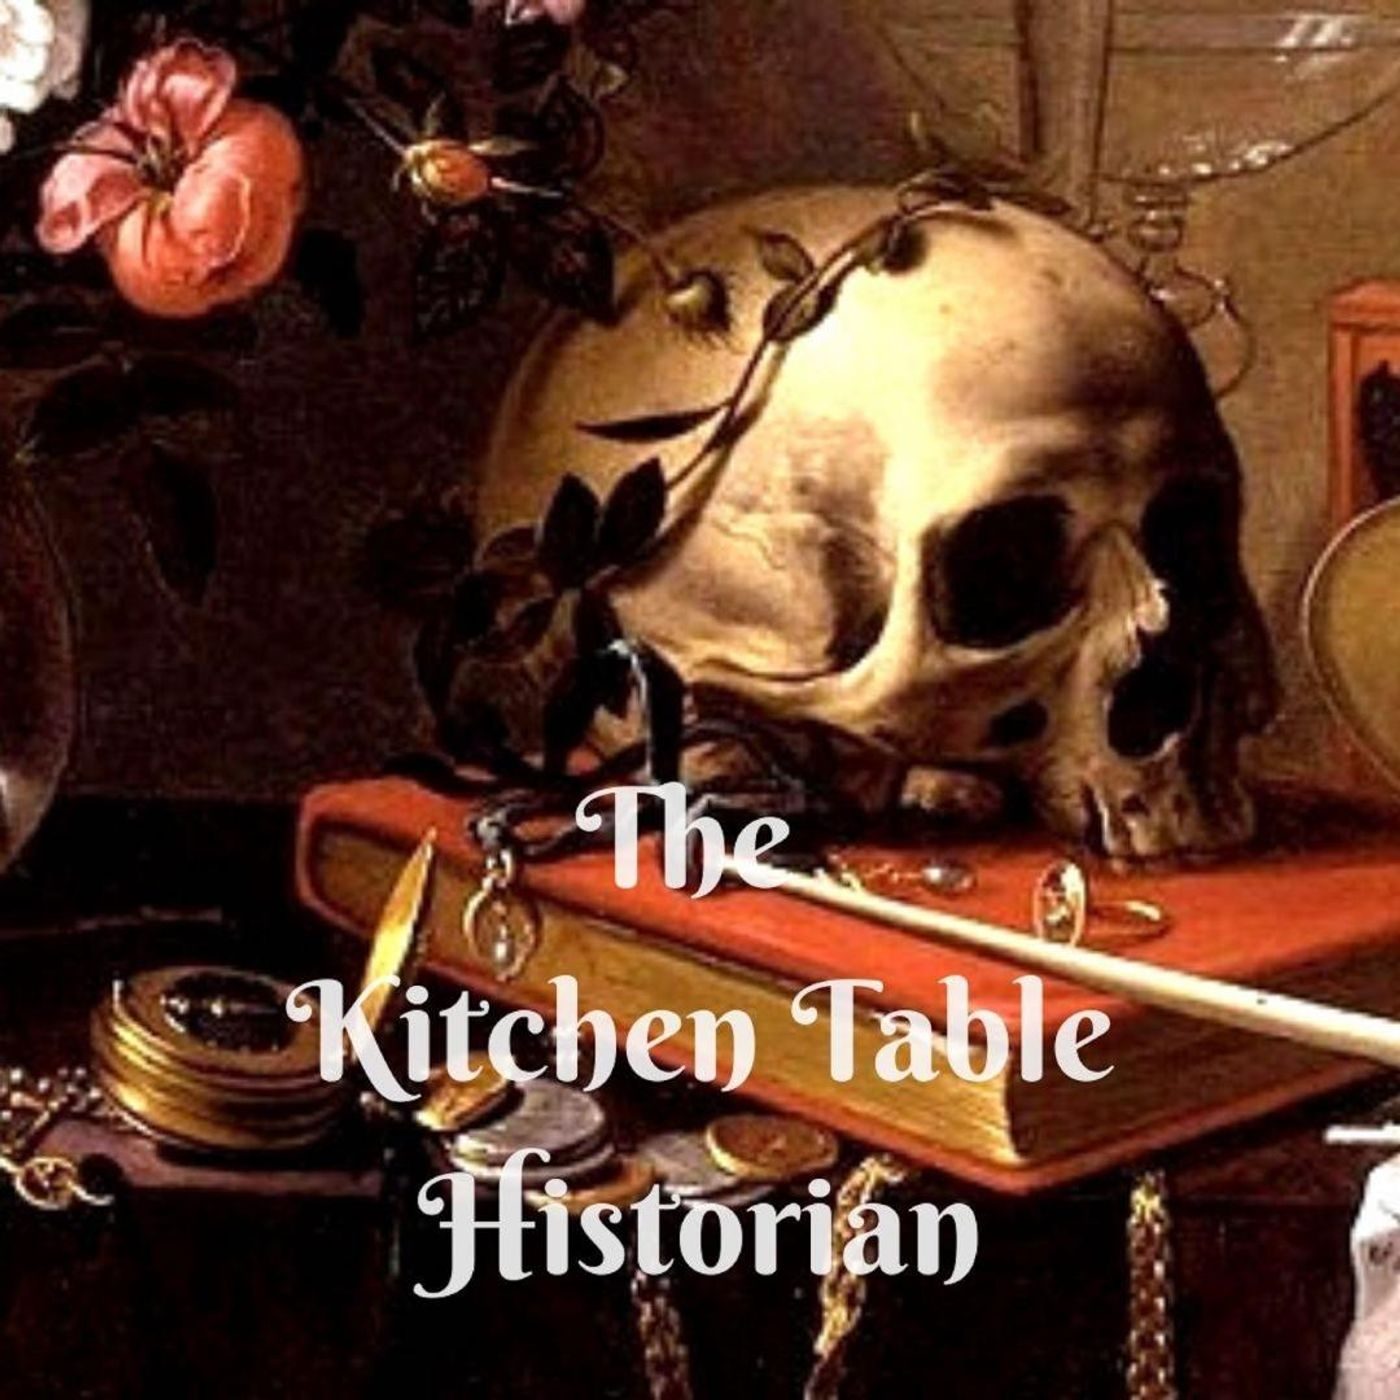 The Kitchen Table Historian